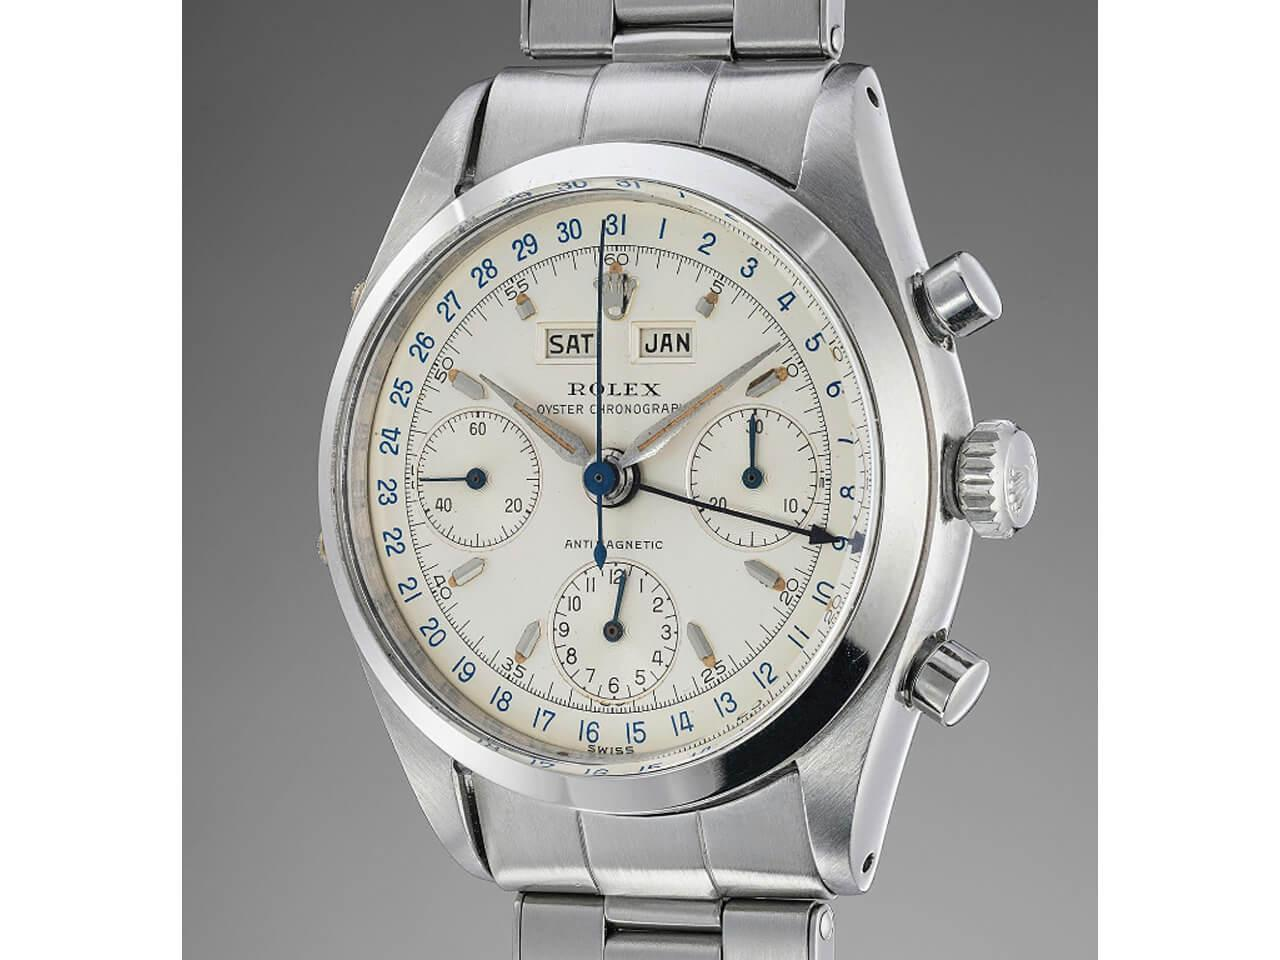 ROLEX Oyster Chronograph Antimagnetic,